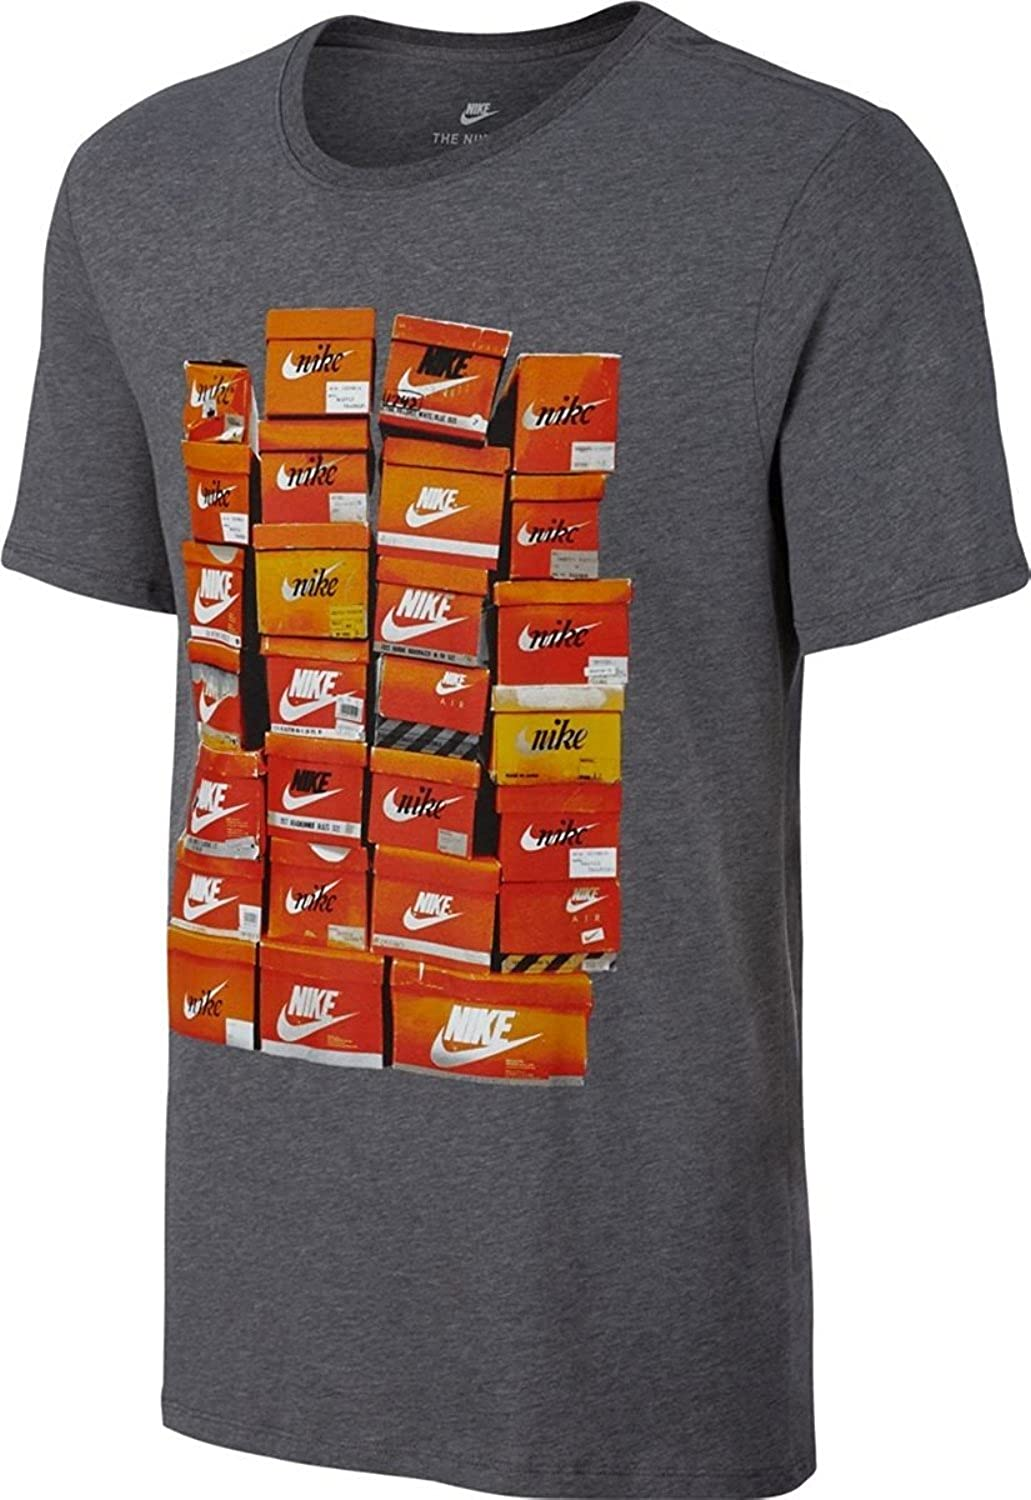 128c7a31dc4f Top 10 wholesale Nike T Shirt - Chinabrands.com